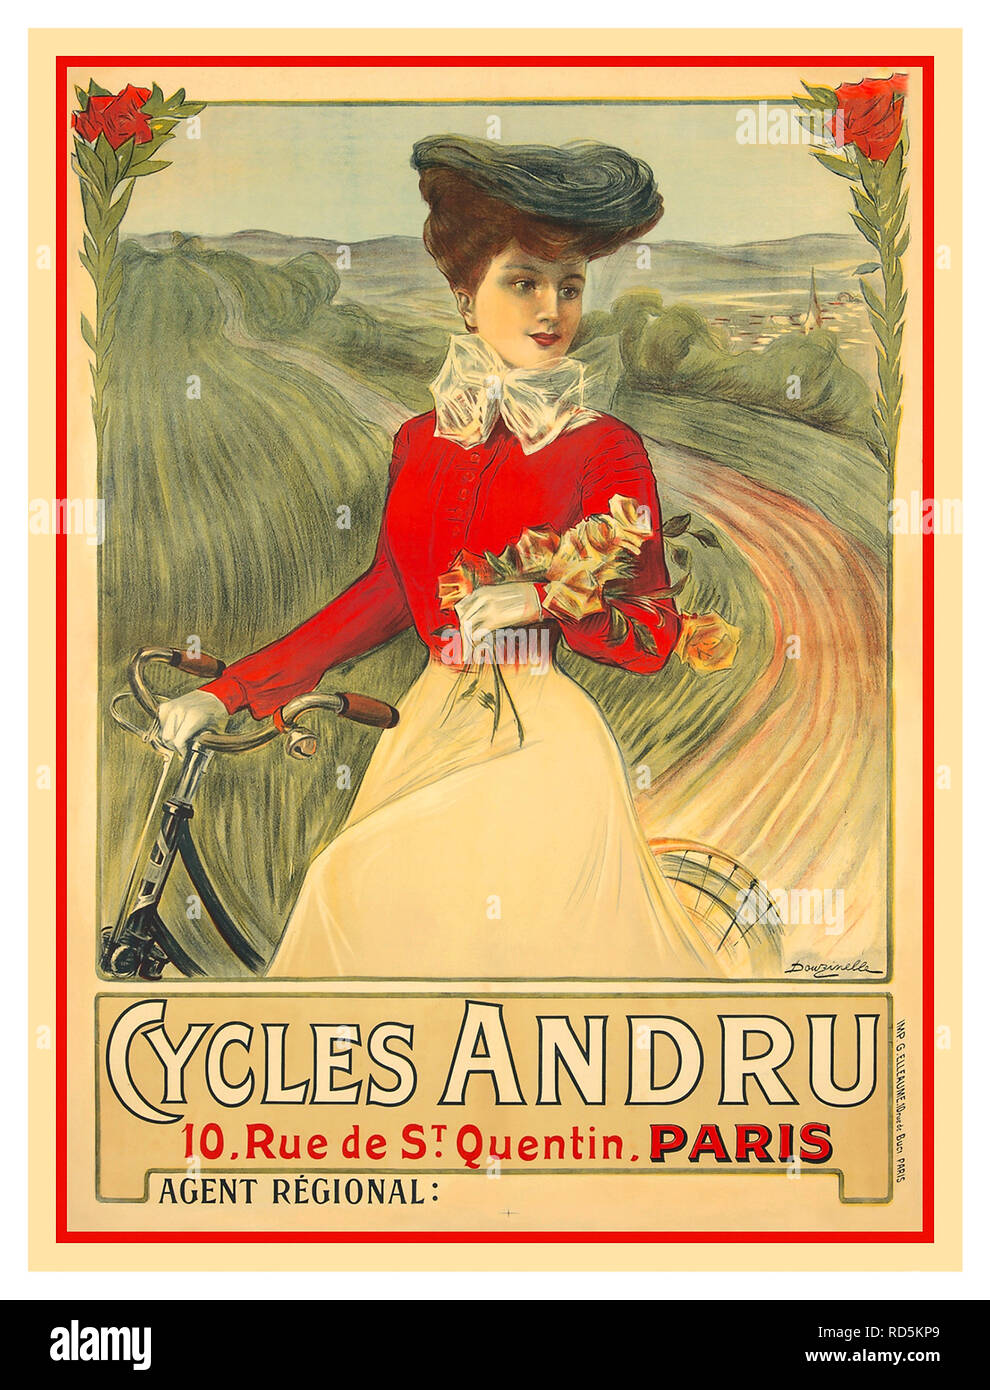 BICYCLE POSTER Vintage 1890 s French Advertising Poster  Cycles Andru   Vintage Poster (artist  cabd1e3a1